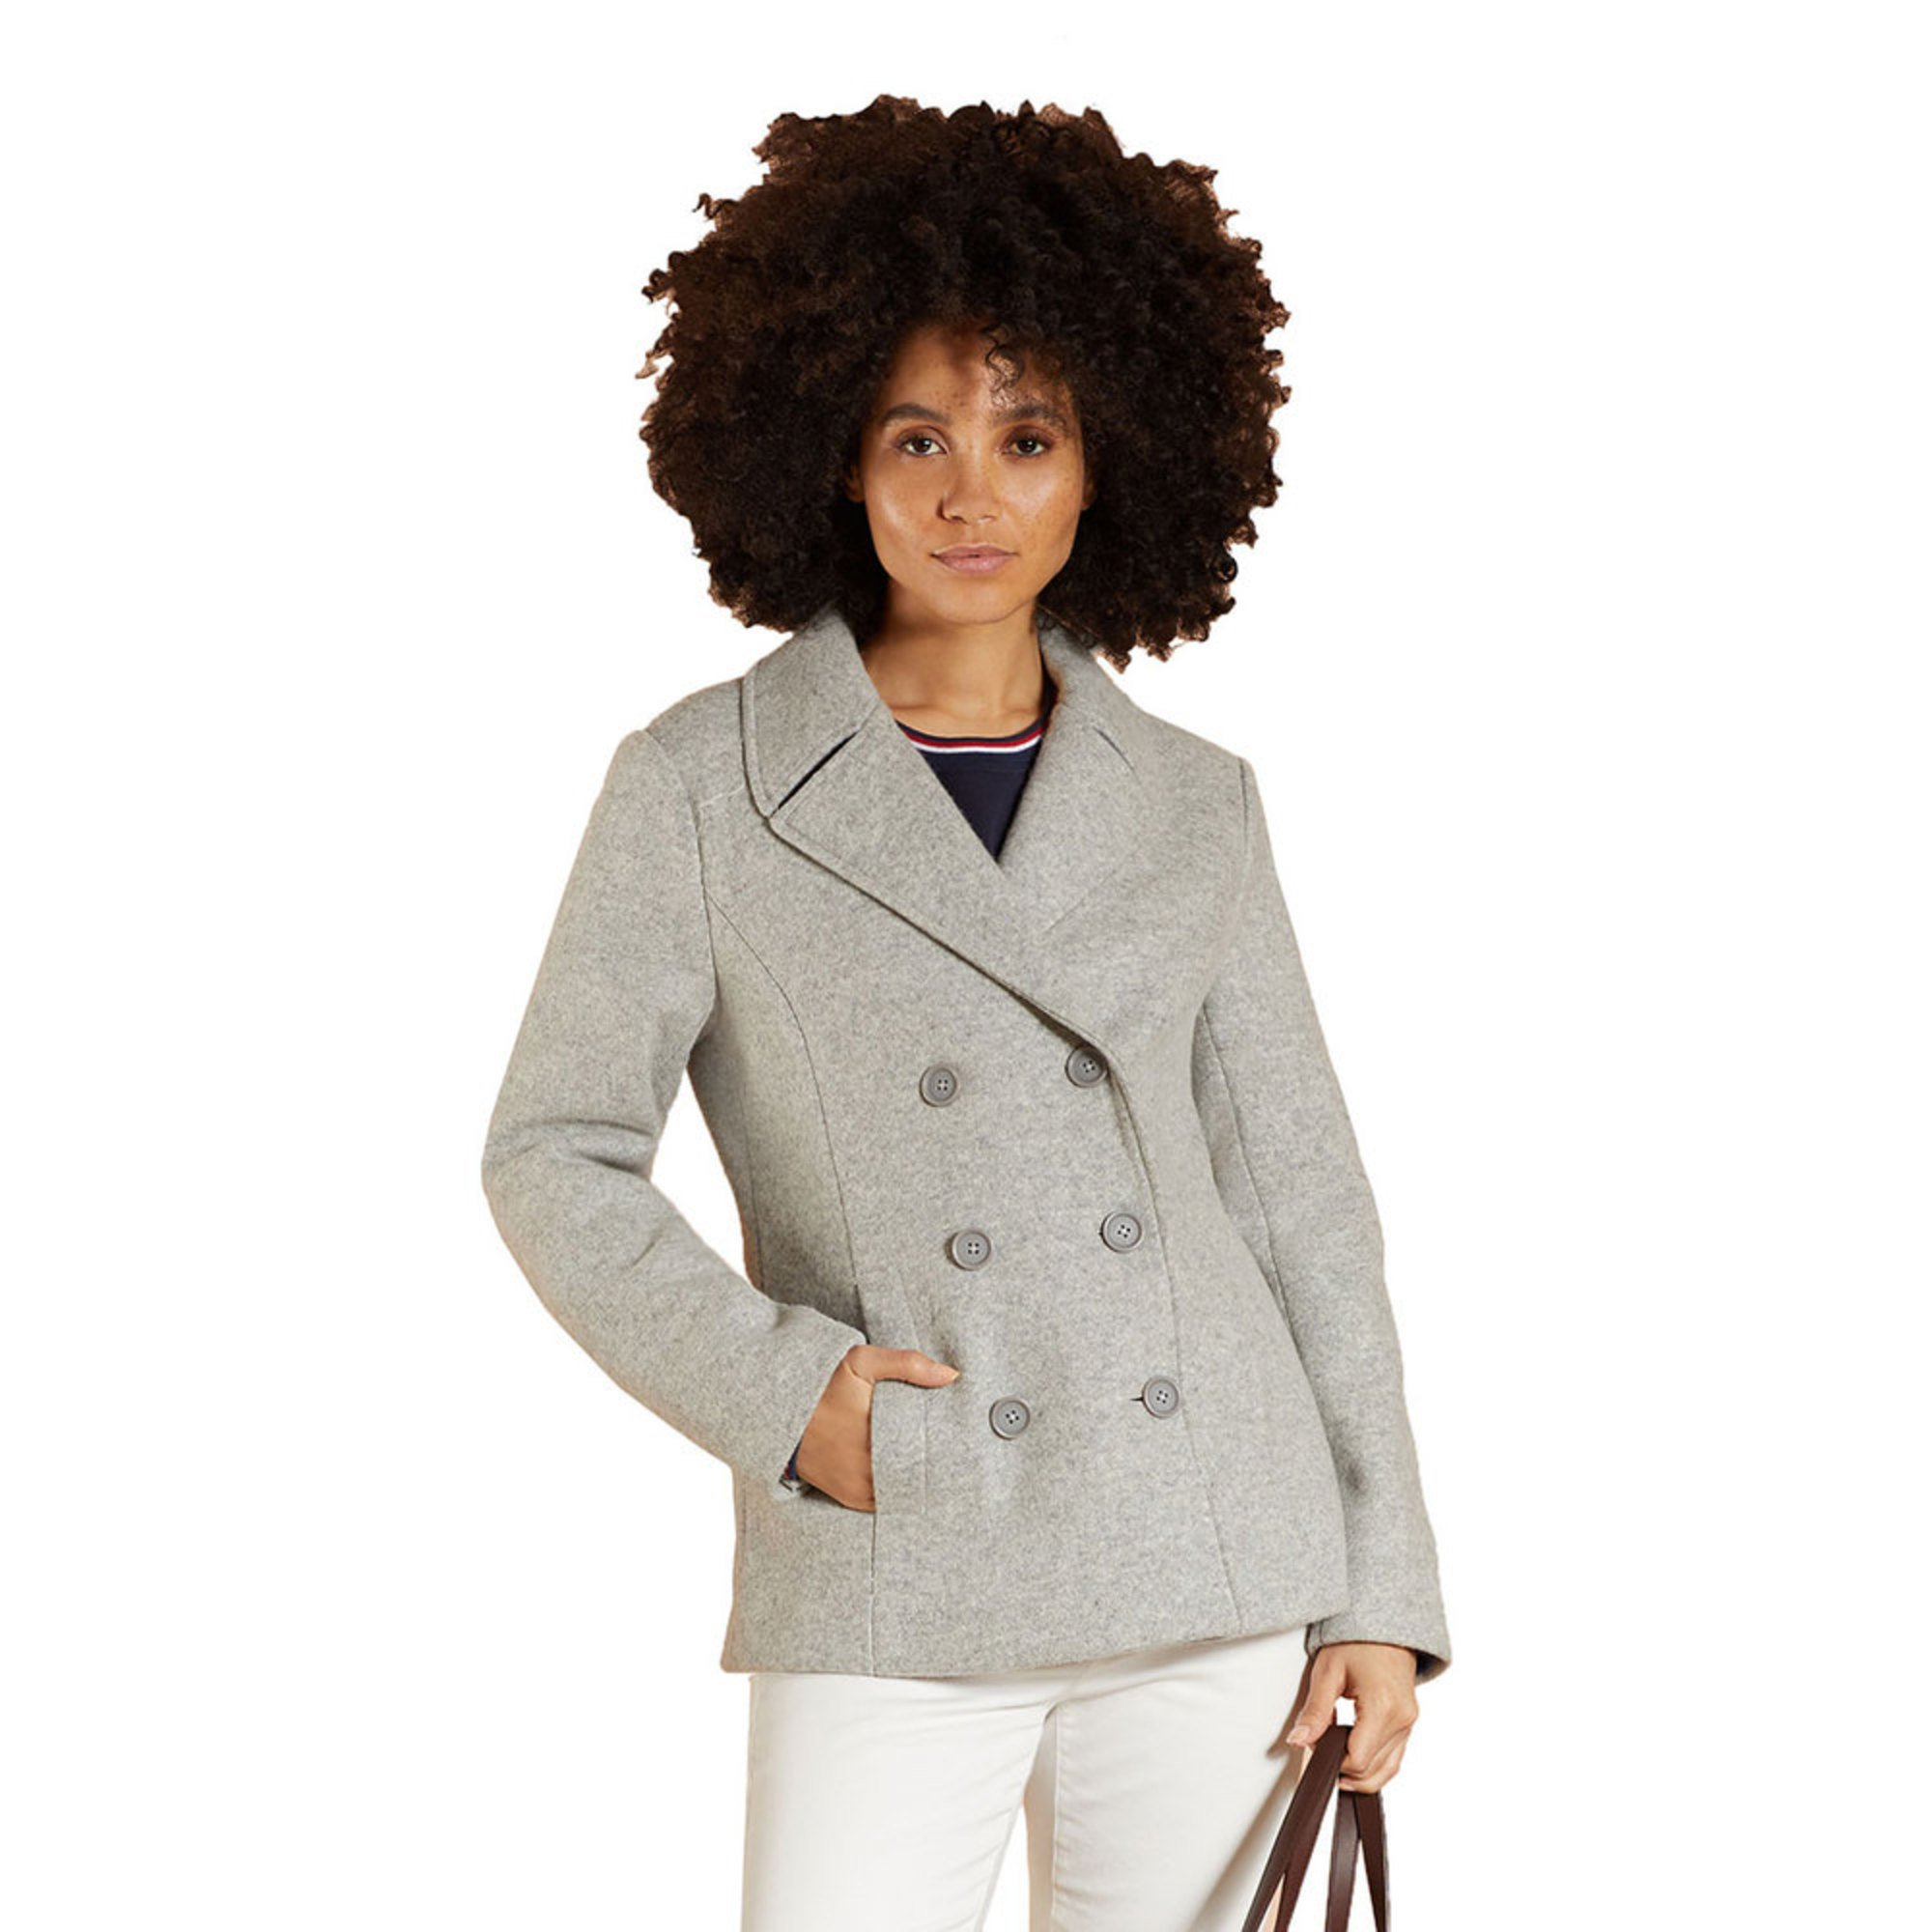 size 7 factory price high quality materials Brooks Brothers Women's Red Fleece Wool Peacoat   Casual ...